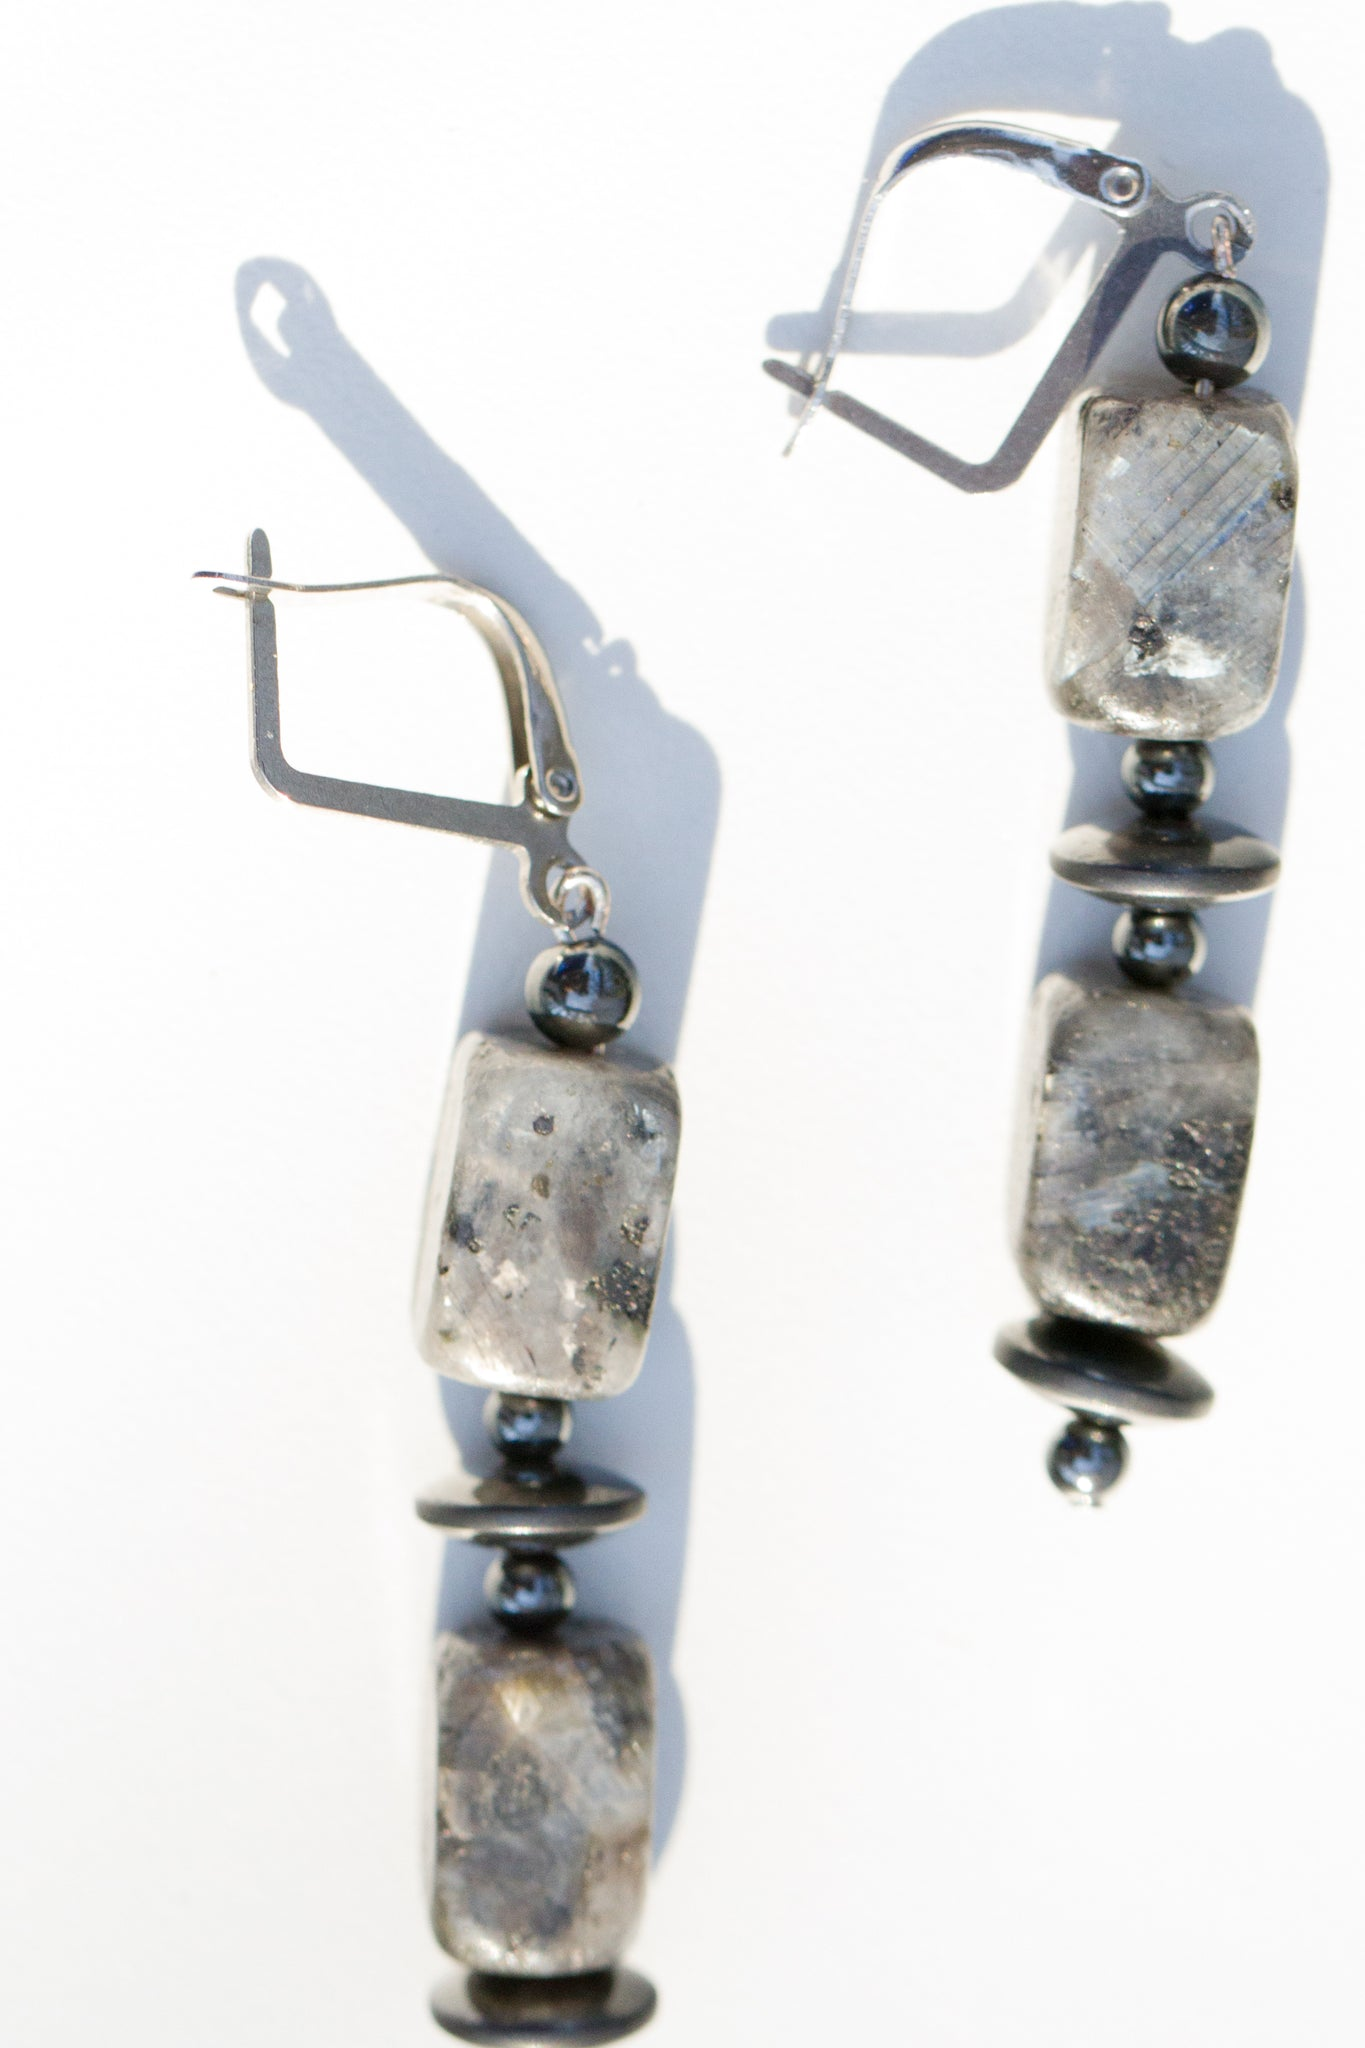 Labradorite and Magnetic Hematite Stone Earrings with Locking Stainless Steel Leverback Hooks